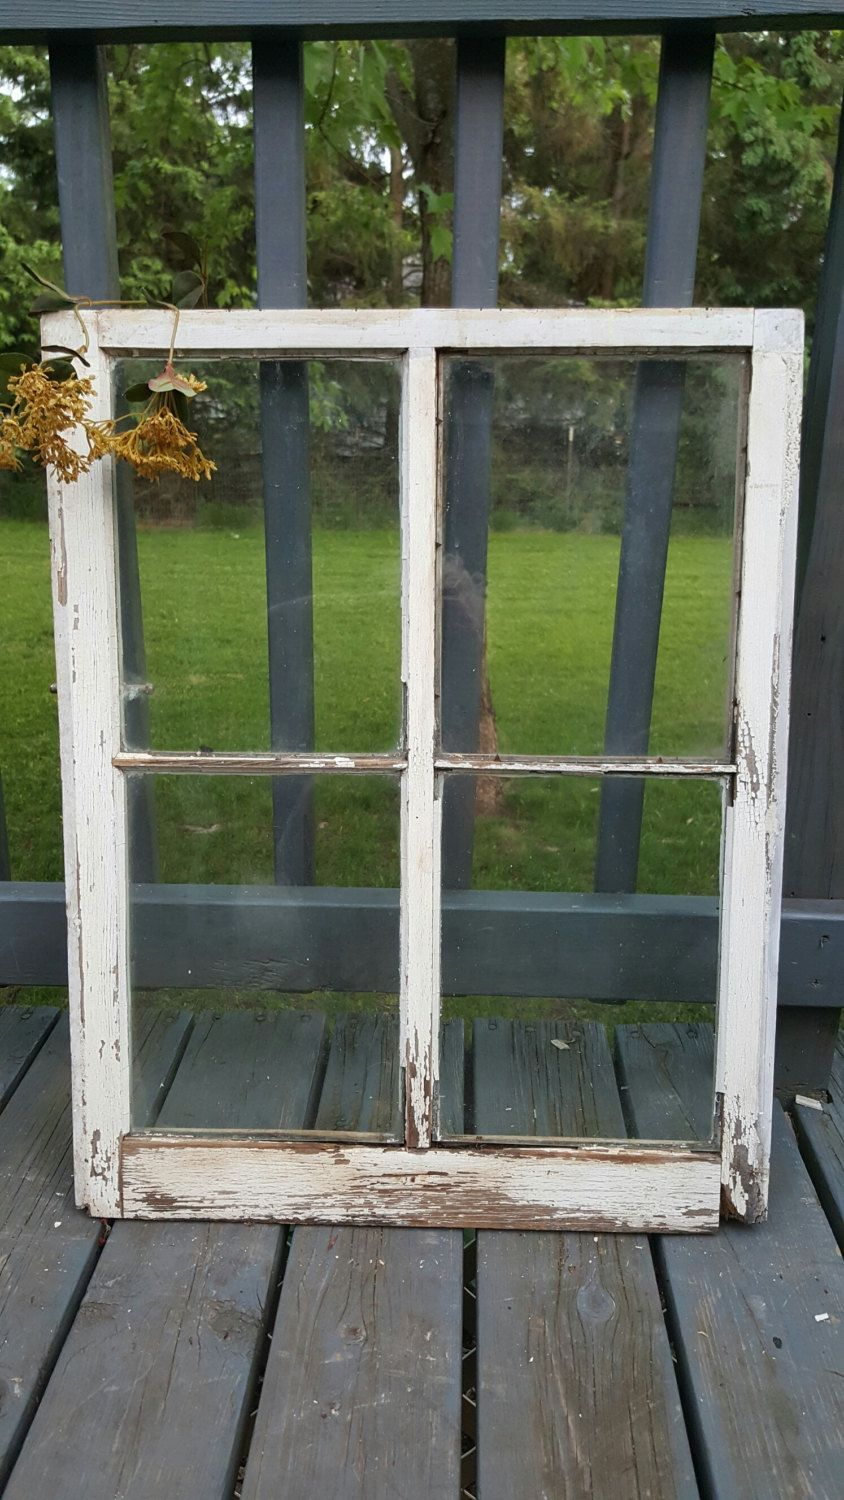 Vintage Wood Window Window Frame Farmhouse Cottage Decor Old Wood Window Old Window 4 Pane Barn Window Primitiv Window Frame Vintage Wood Cottage Decor